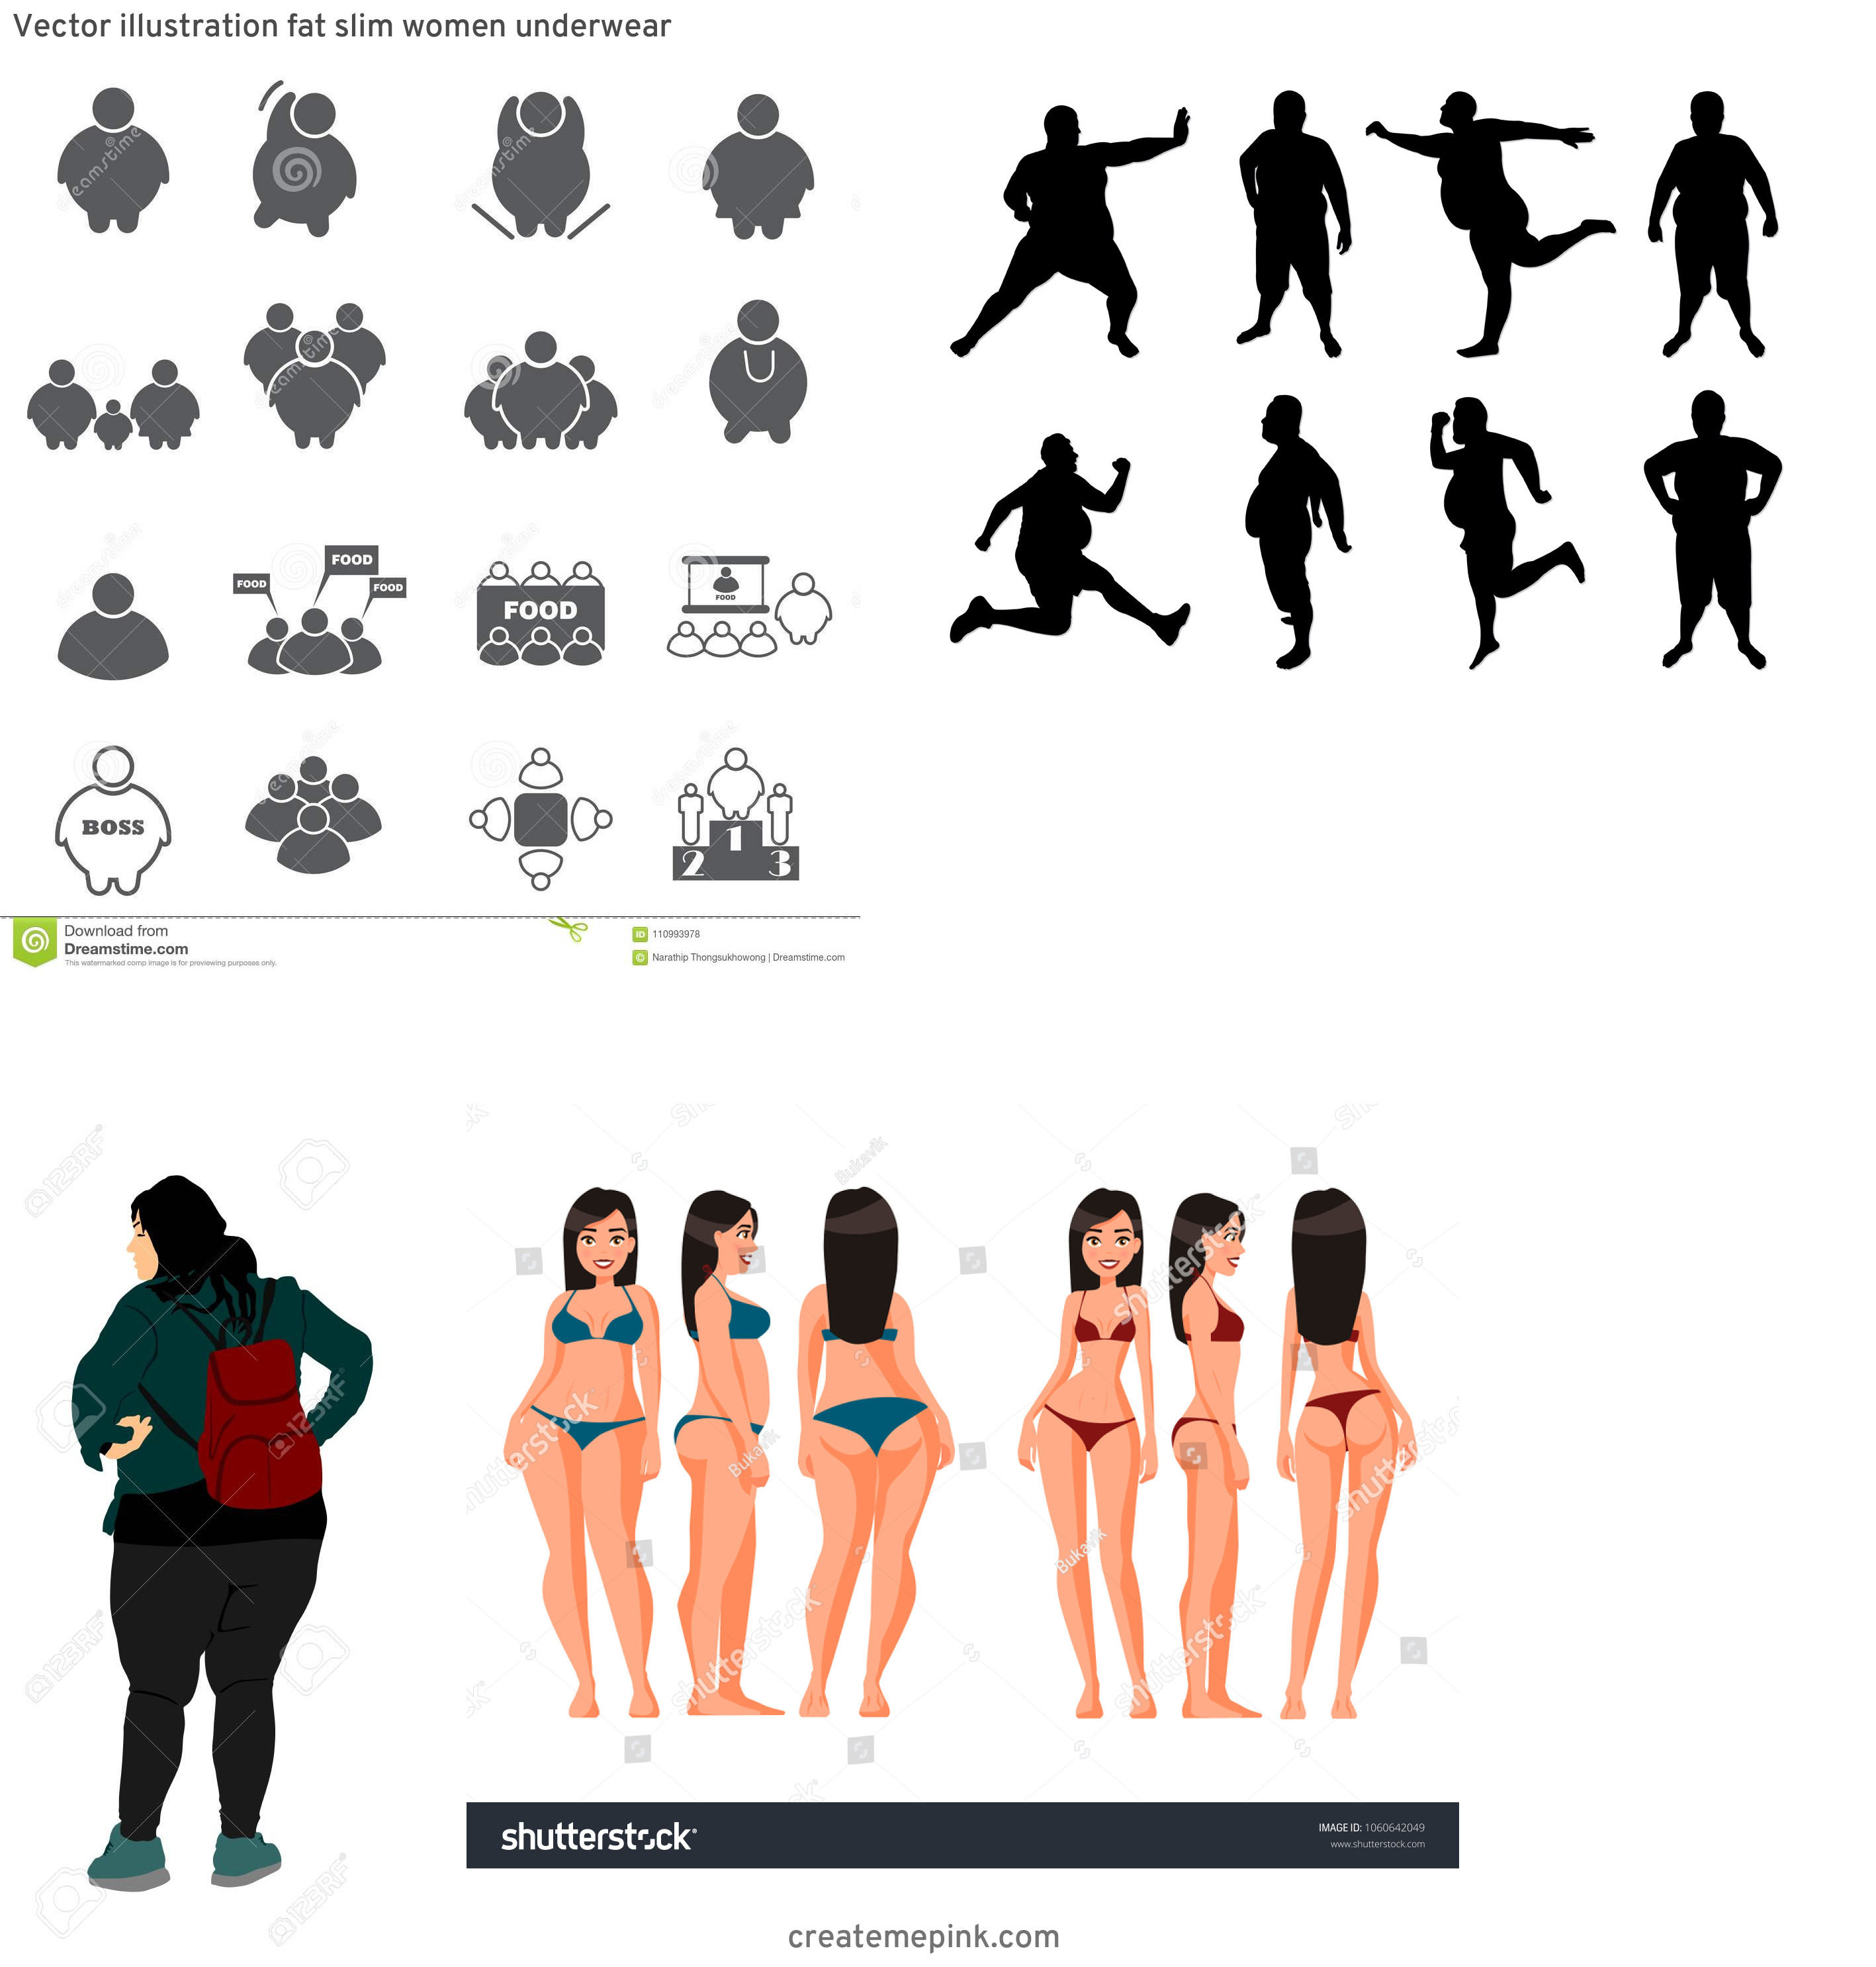 People Silhouette Vector Illustration Of Fat: Vector Illustration Fat Slim Women Underwear